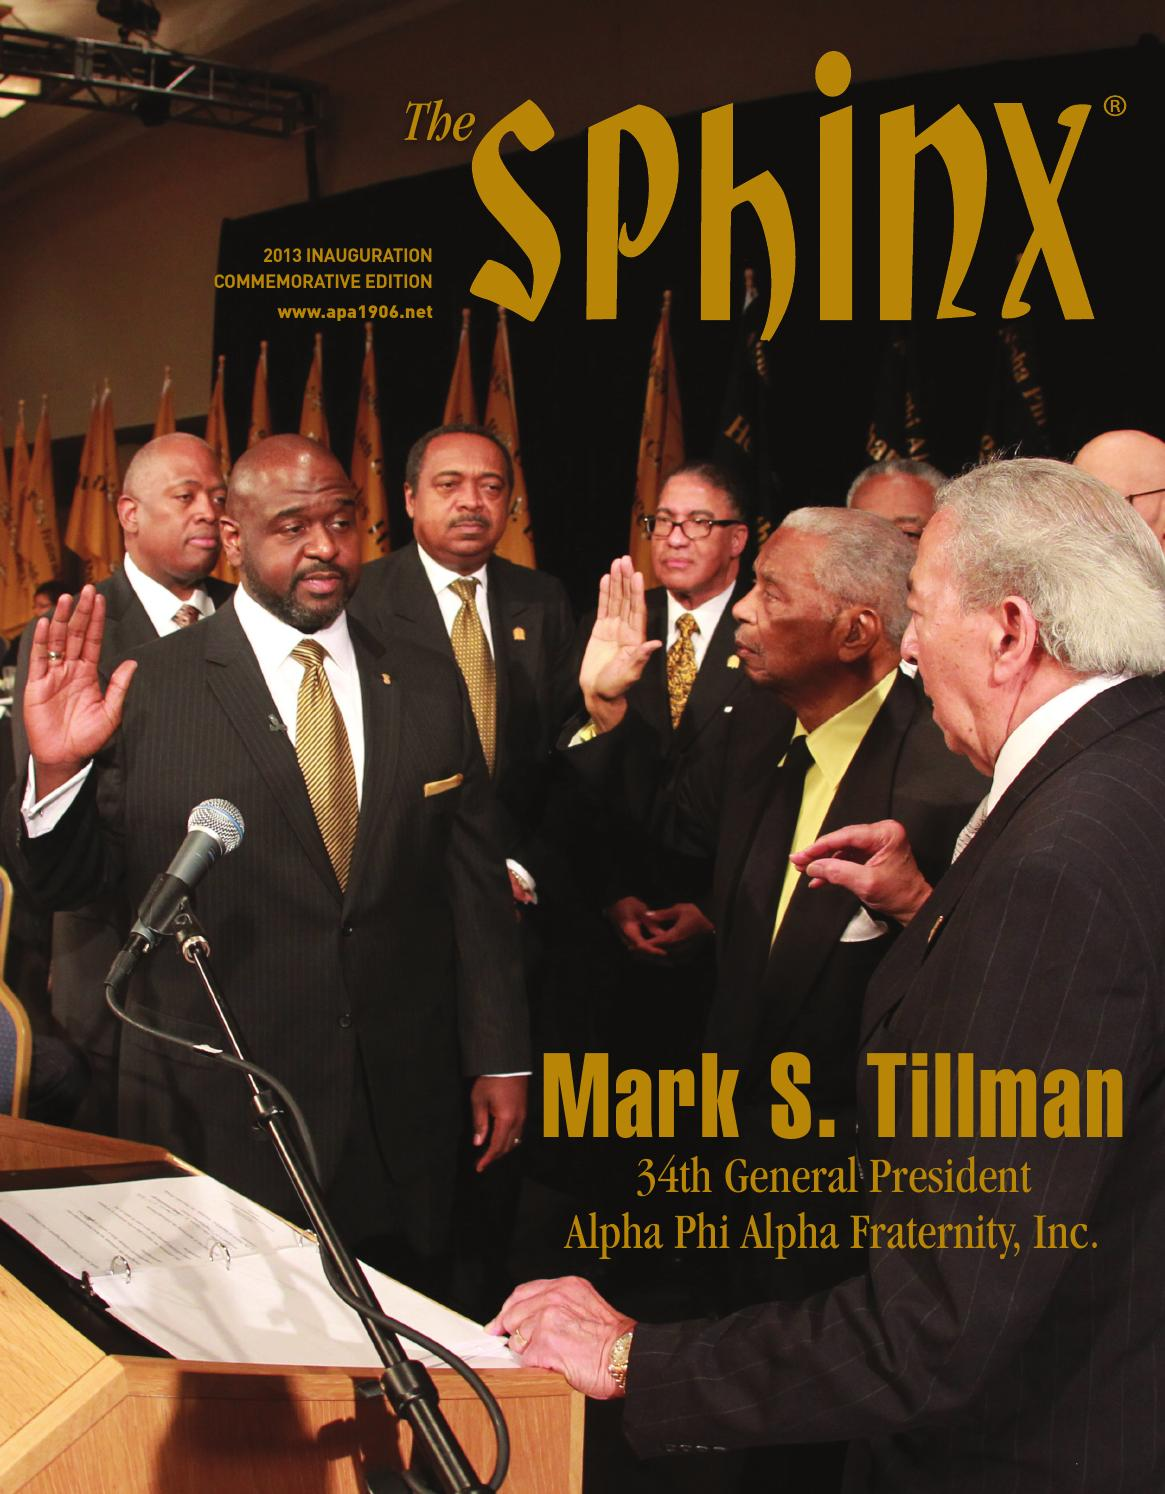 sphinx 2013 inaugural edition by alpha phi alpha